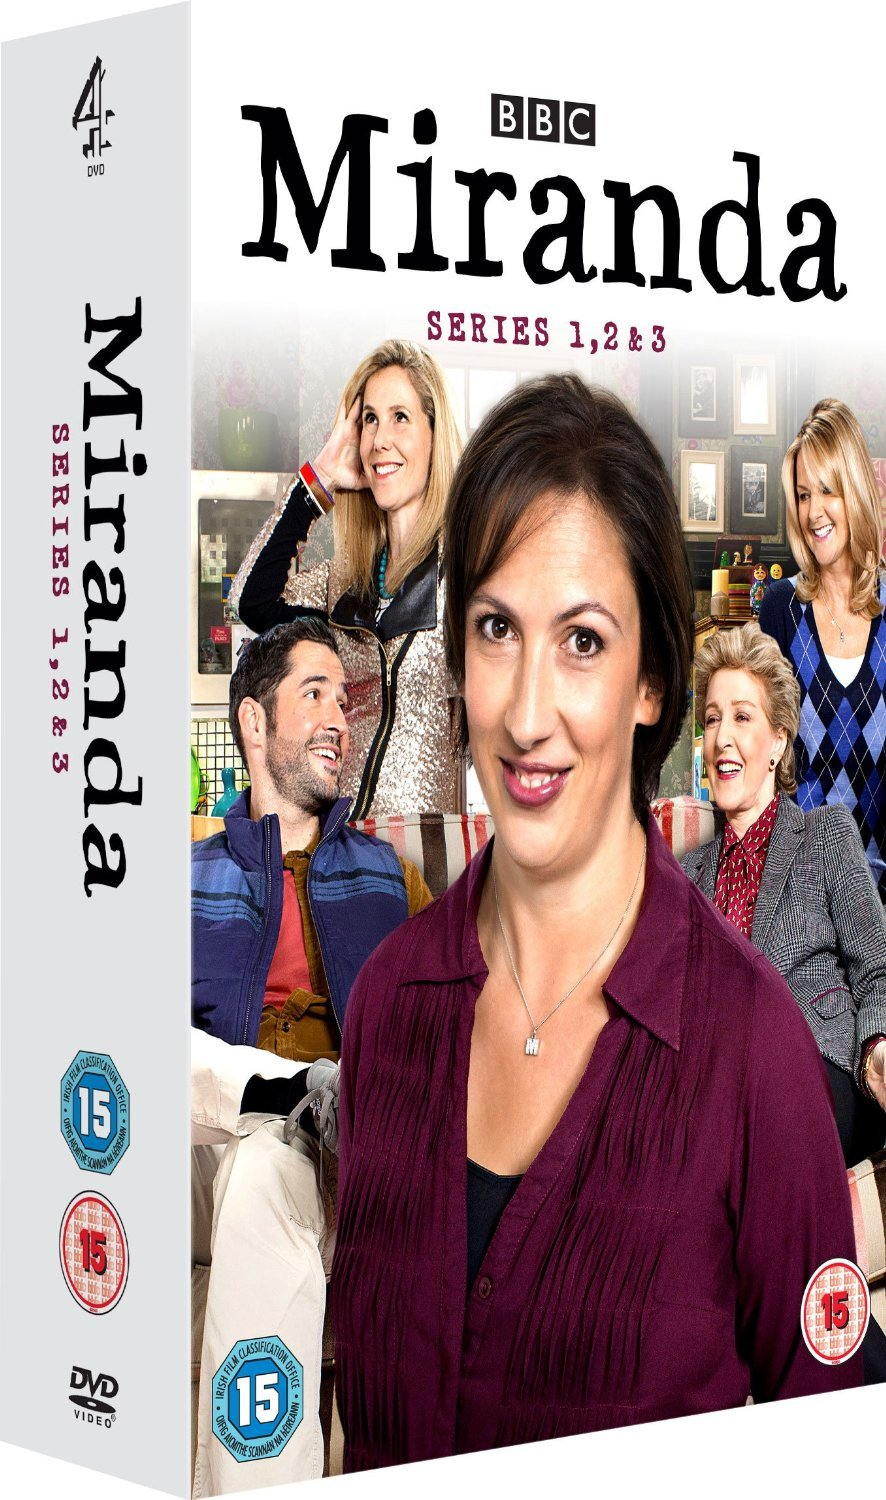 Miranda - Series 1-3 box set [UK import, region 2 PAL format]